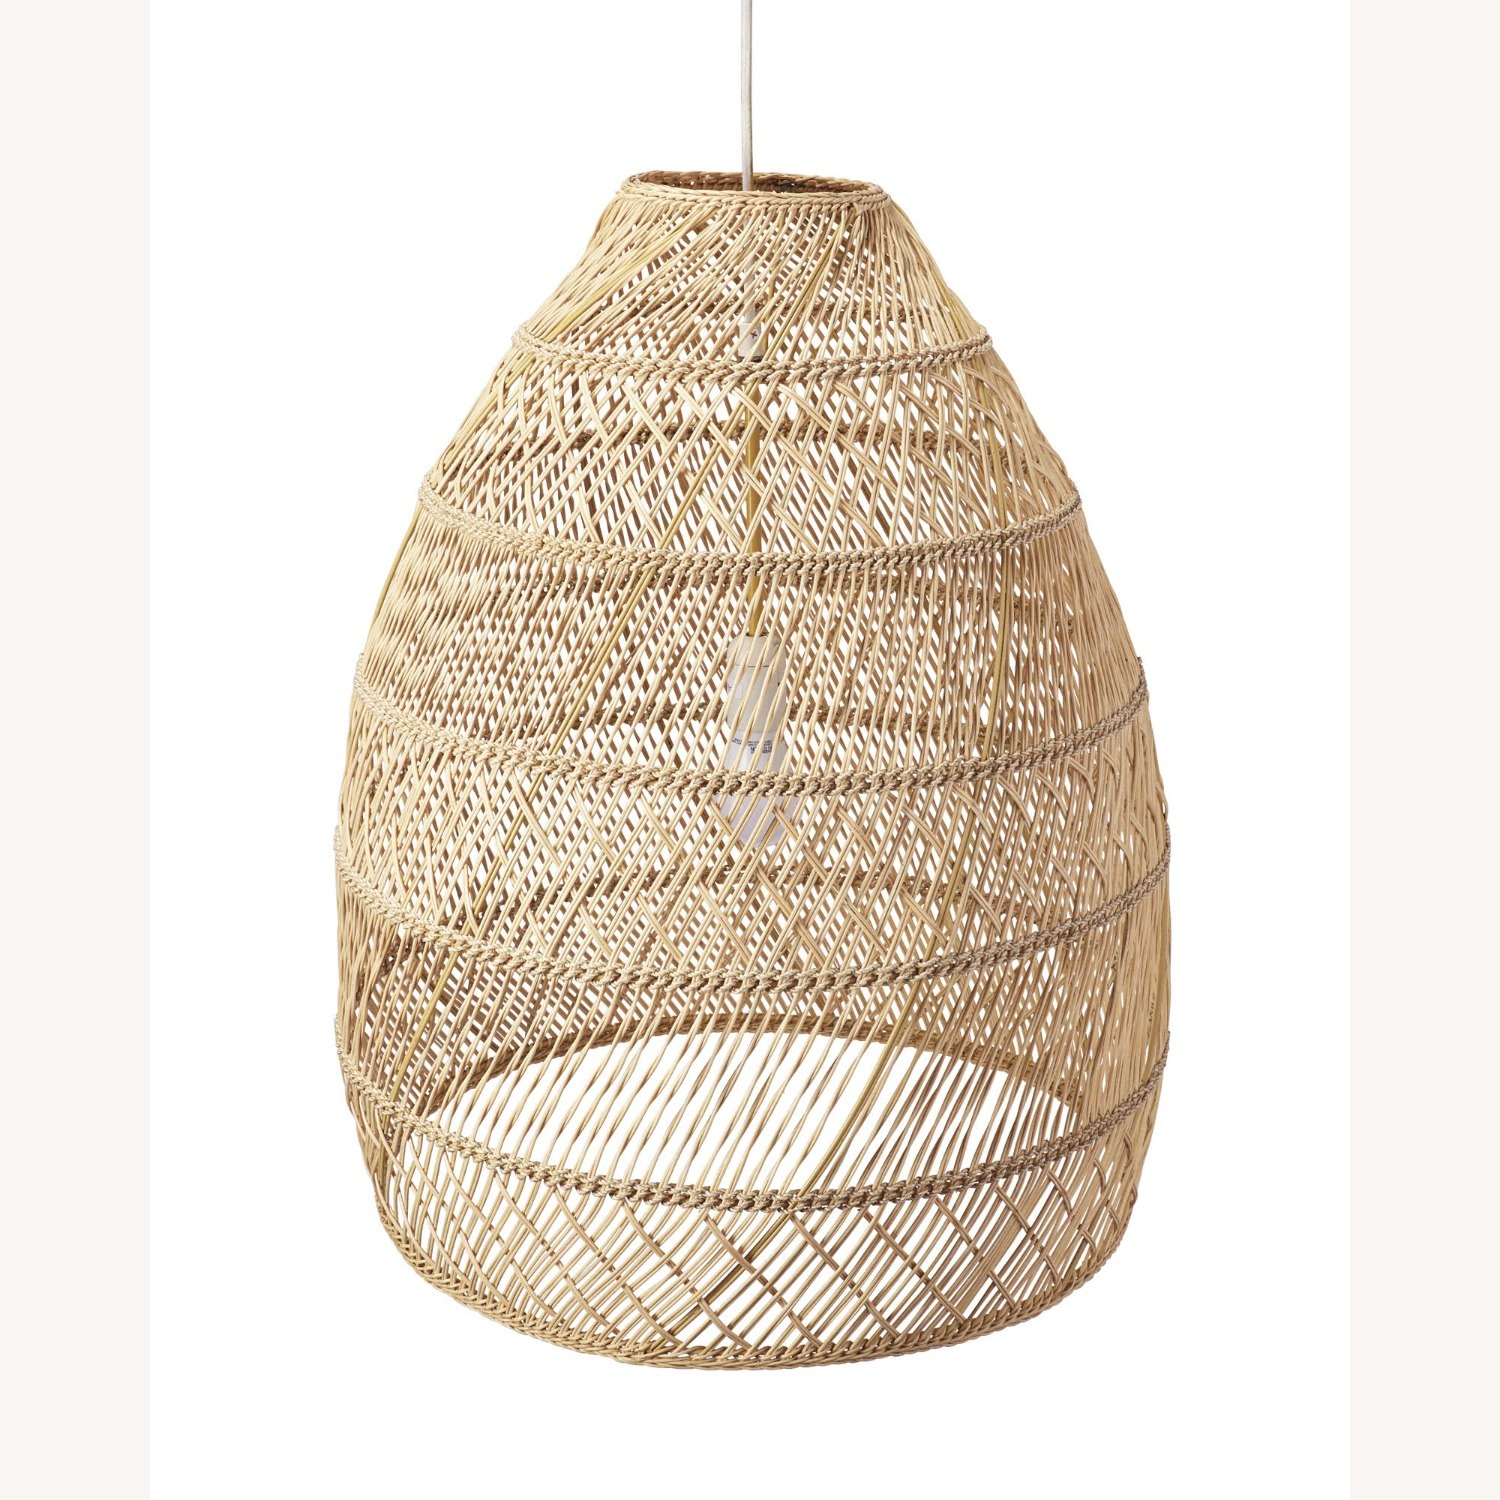 Serena and Lily Rattan Ceiling Light Pendants (2) - image-2